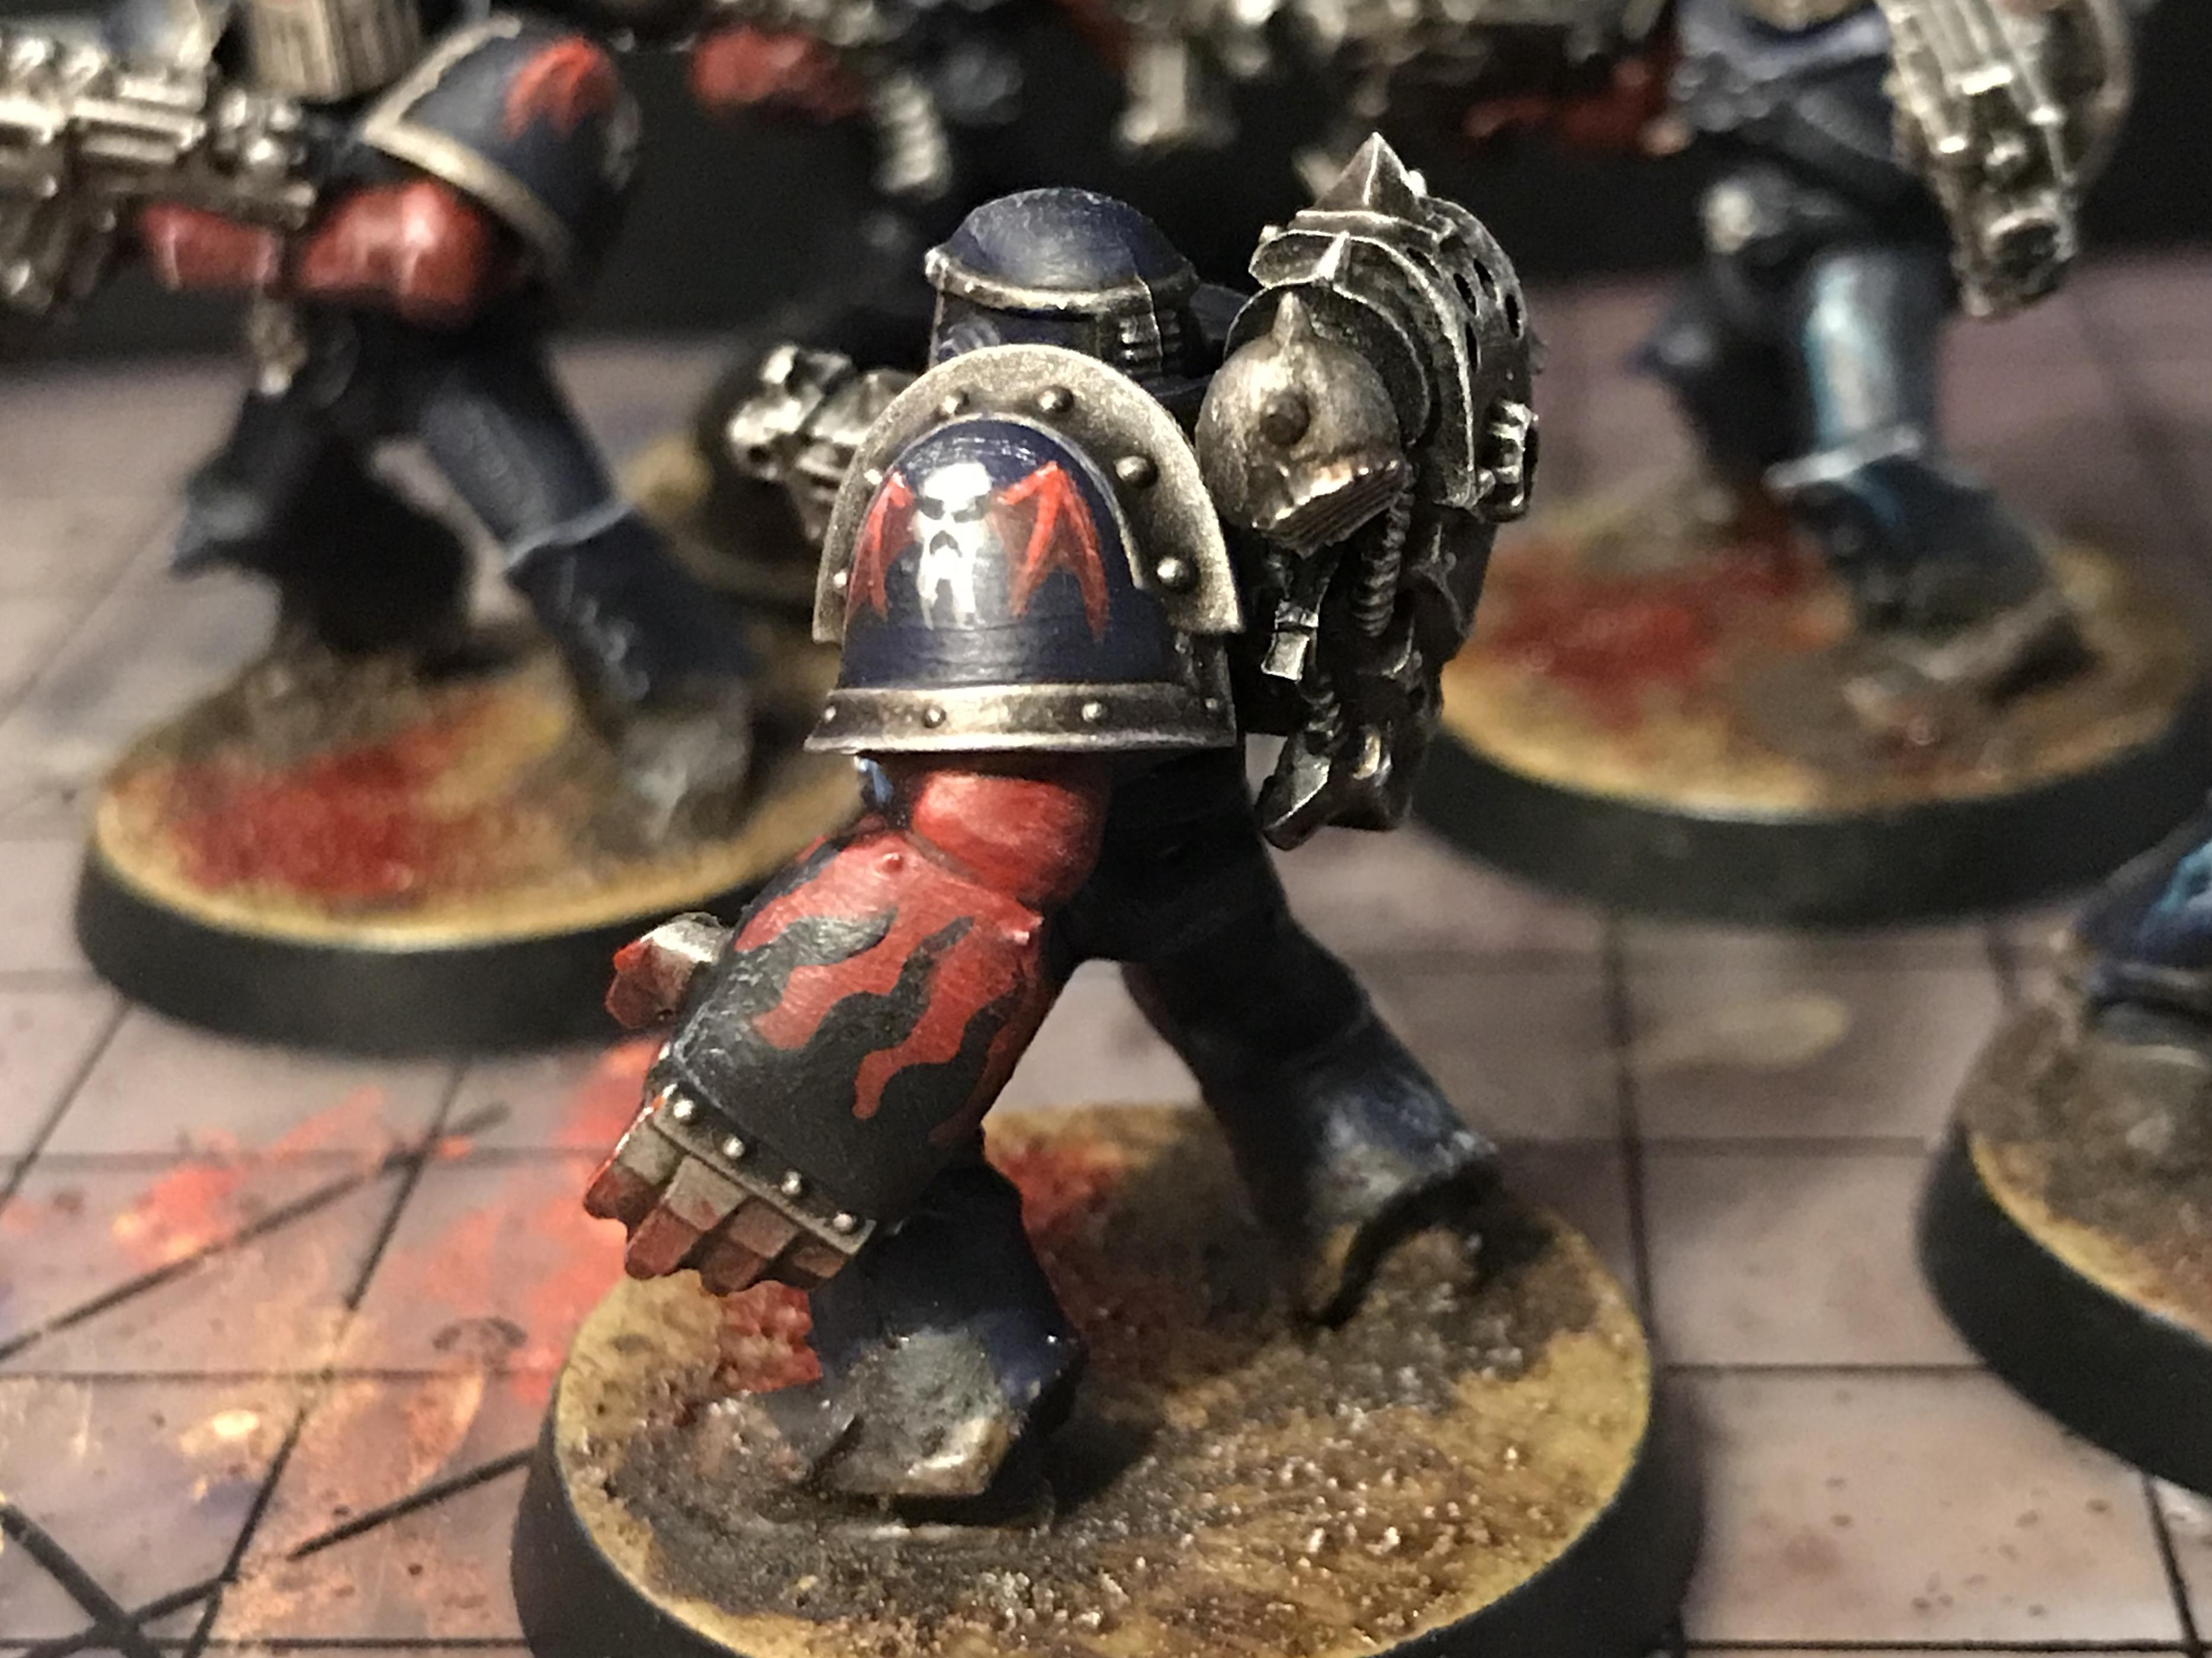 30k, Apc, Armor, Army, Assault, Astardes, Attack, Black, Blood, Chaos, Chosen, Classic, Conversion, Corrupted, Crimson, Crusade, Curze, Death, Era, Evil, Fast, Flayed, Flayer, Flesh, Gang, Gangs, Great, Green, Grisly, Hand, Hands, Heresy, Heretic, Horrors, Horus, Imperial, Kaos, Kill, Killers, Kit Bash, Konrad, Le2, Legion, Legionnaire, Legionnaires, Legionnes, Legions, Lightning, Lord, Lords, Man, Mask, Murder, Murderers, Night, Night Lords, Nostramo, Out Of Production, Pained, Pirate, Pirates, Power, Primarch, Rage, Raiders, Raptors, Reaver, Reavers, Red, Red Hands Gang Tradition, Renegade, Renegades, Retinue, Retro, Rhino, Rogue, Rtb01, Saboteur, Sculpting, Shadow, Shroud, Skin, Soul, Space, Space Marines, Stalkers, Stealth, Stuff, Tactics, Tank, Tattoo, Tattoos, Team, Terror, Torture, Trader, Tradition, Traitor, Traitors, Transport, Troops, Trophies, Twisted, Veteran, Vile, Violence, Violent, Warhammer 40,000, Warhammer Fantasy